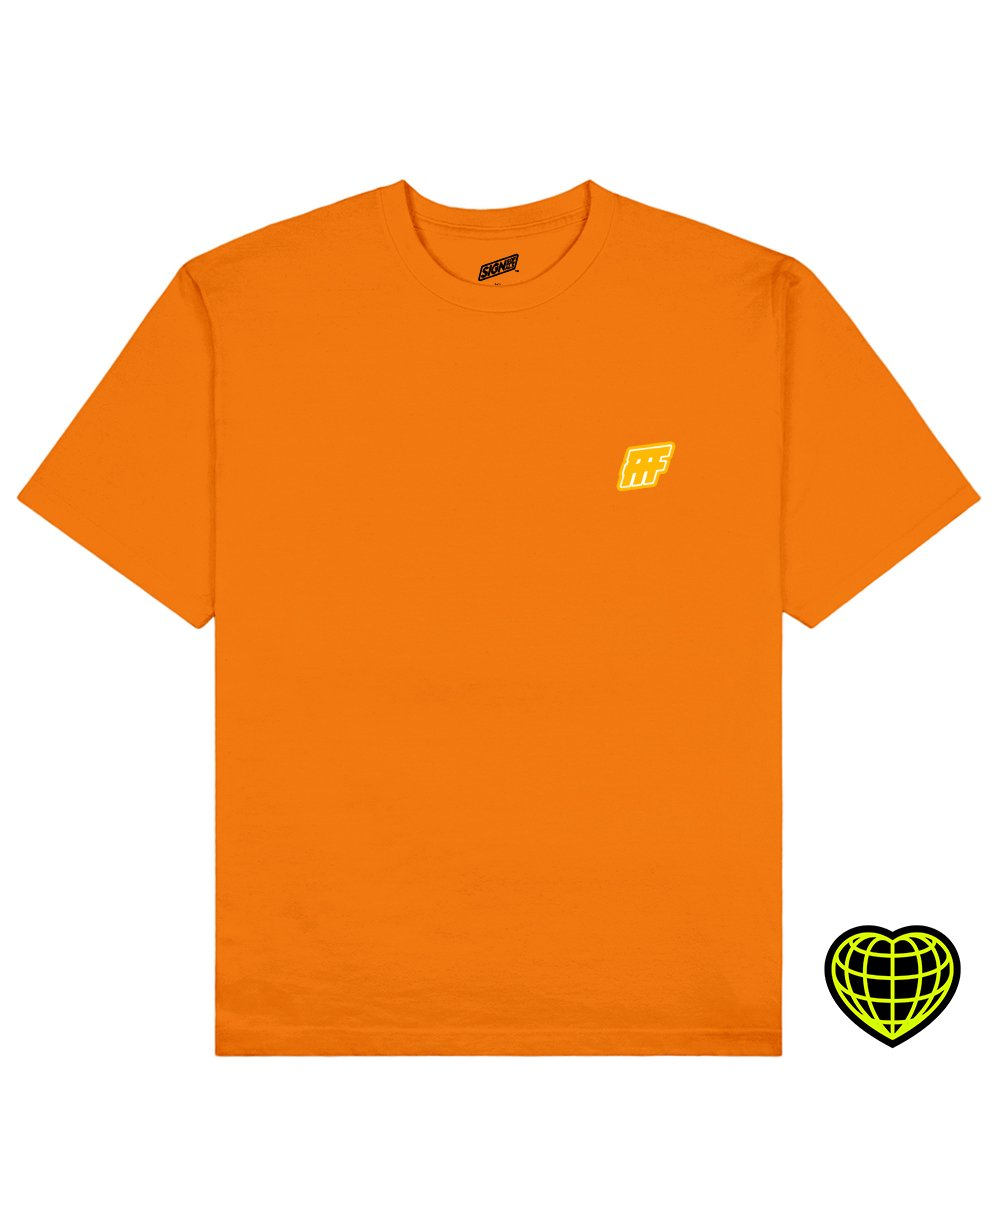 FFF Print T-shirt in Orange - T-Shirts - Signs of Signals - BRANMA